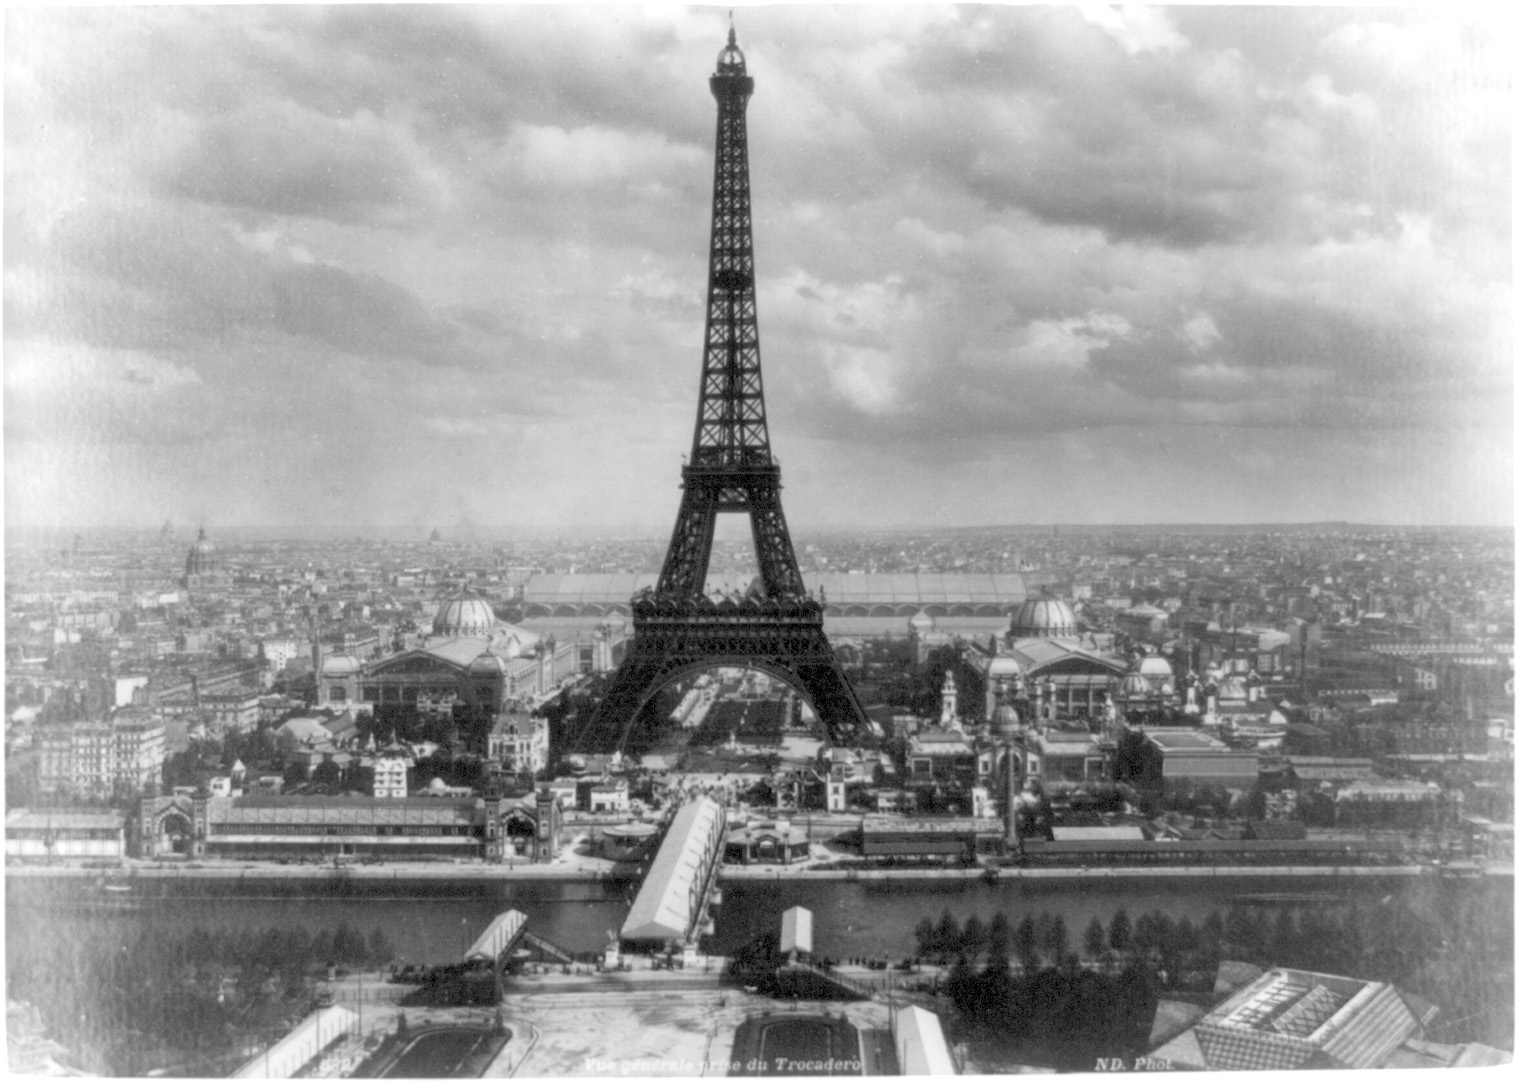 Eiffel_tower_at_Exposition_Universelle,_Paris,_1889.jpg